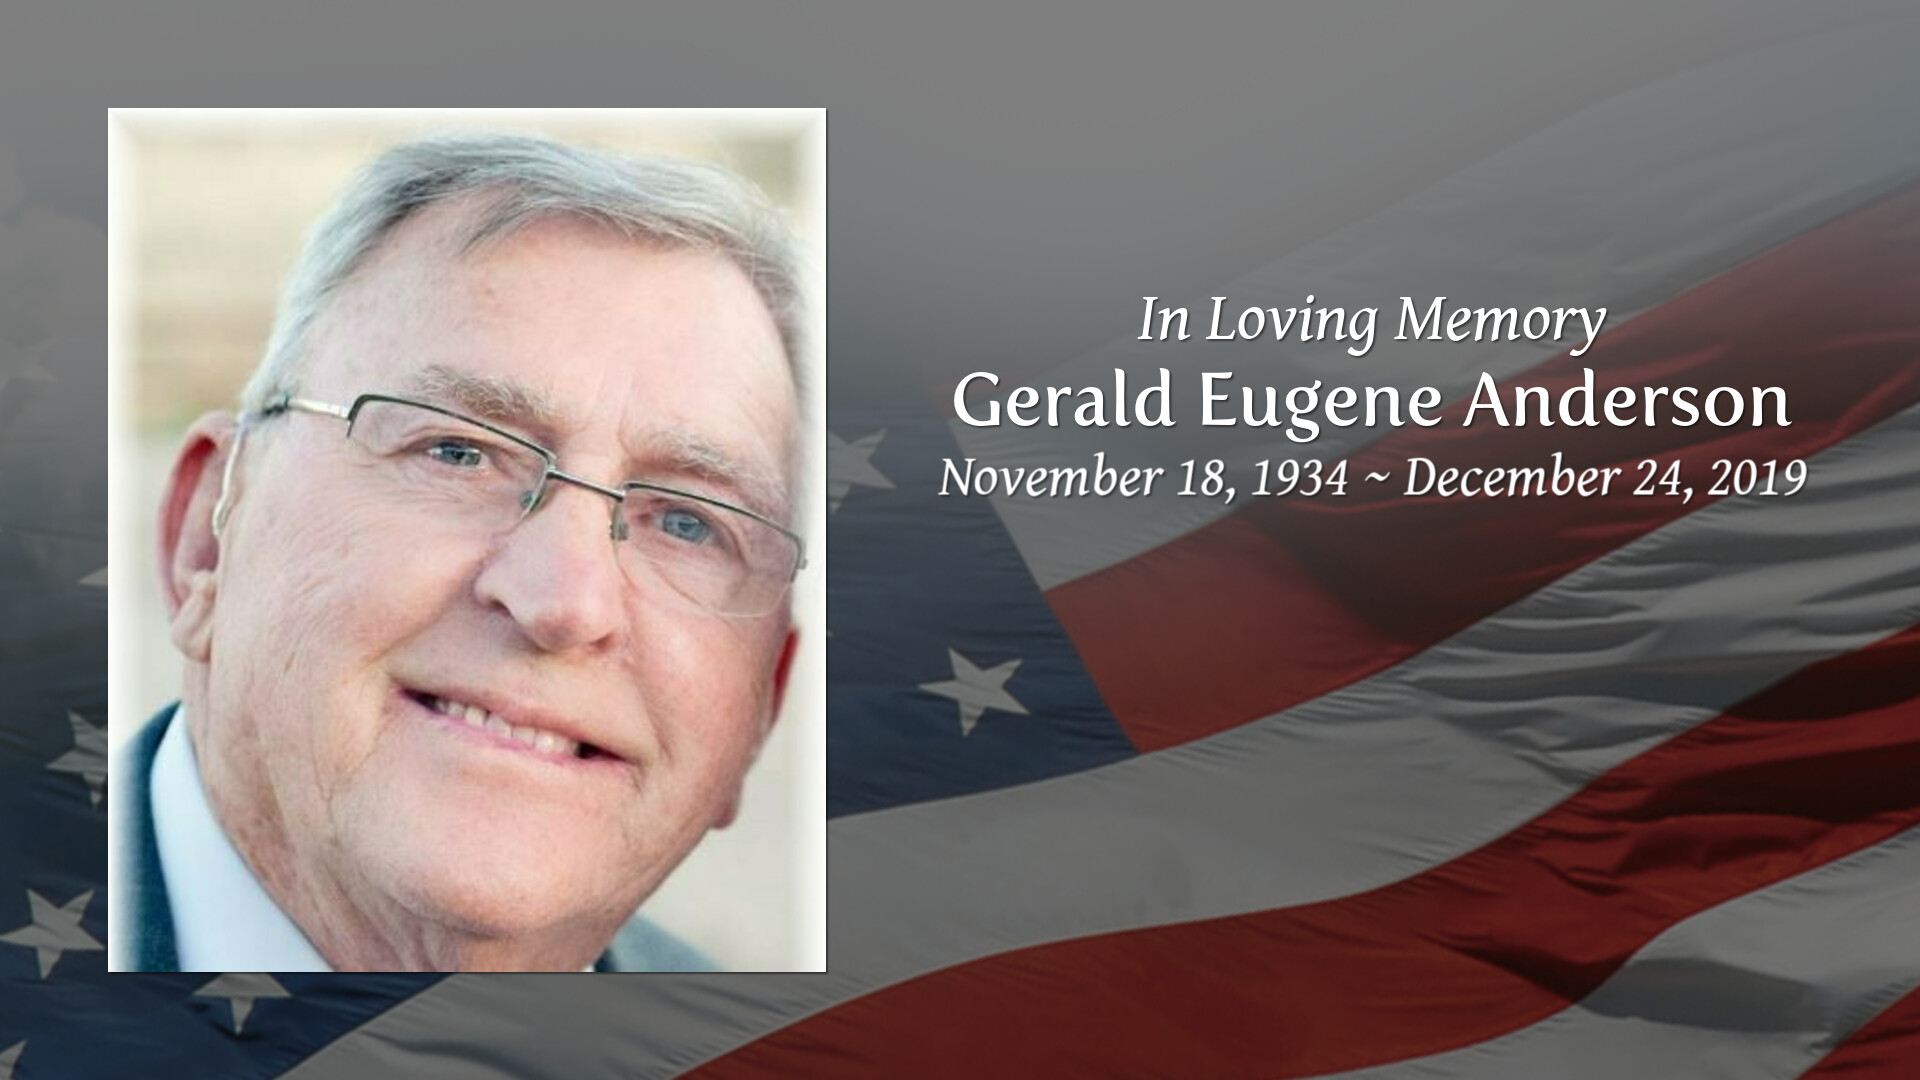 Obituary Gerald Eugene Anderson Of Deming New Mexico